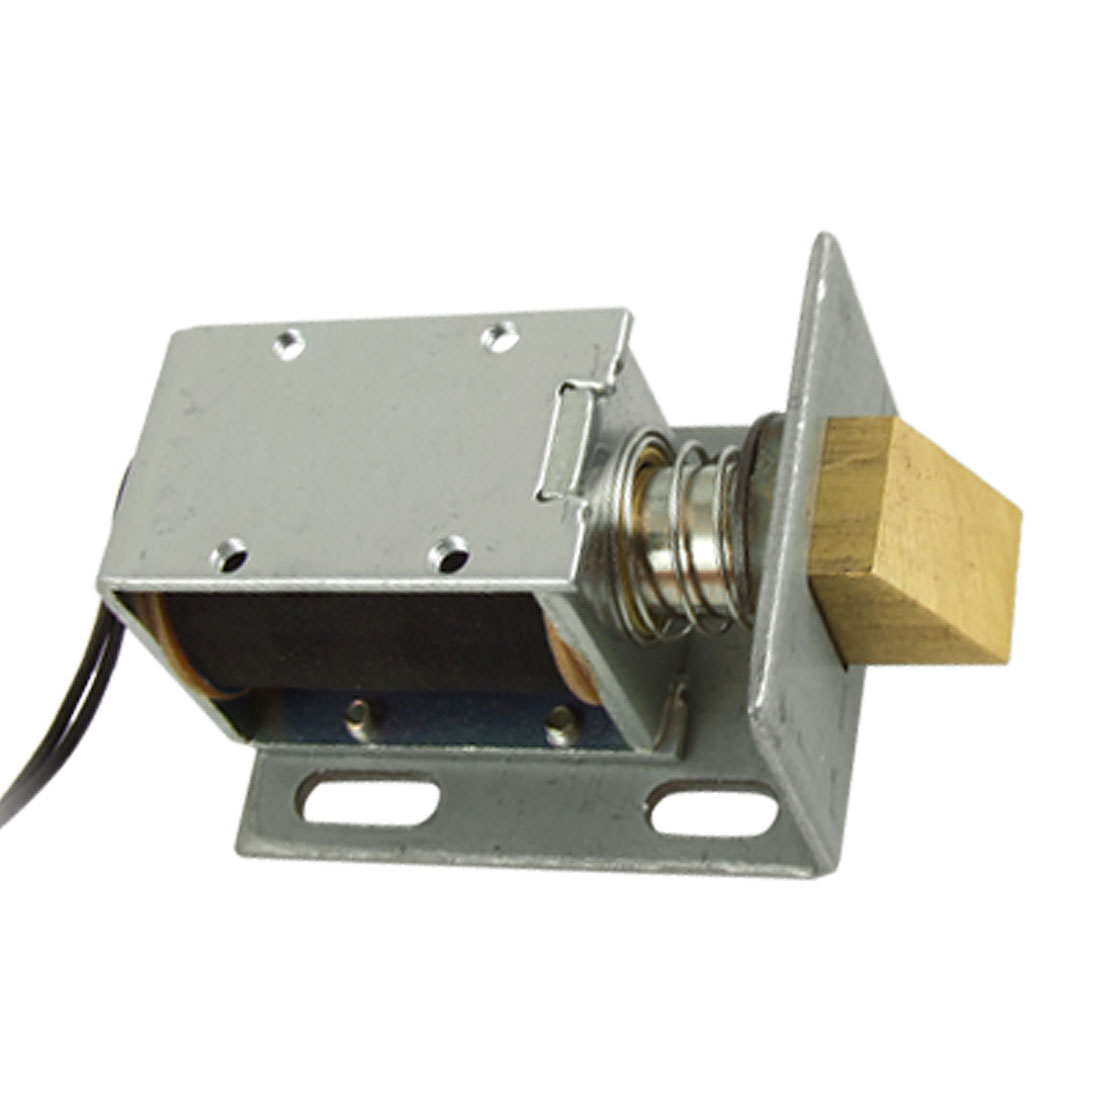 UXCELL 12V 1.3A Open Frame Type Solenoid For Electric Door Lock<br><br>Aliexpress